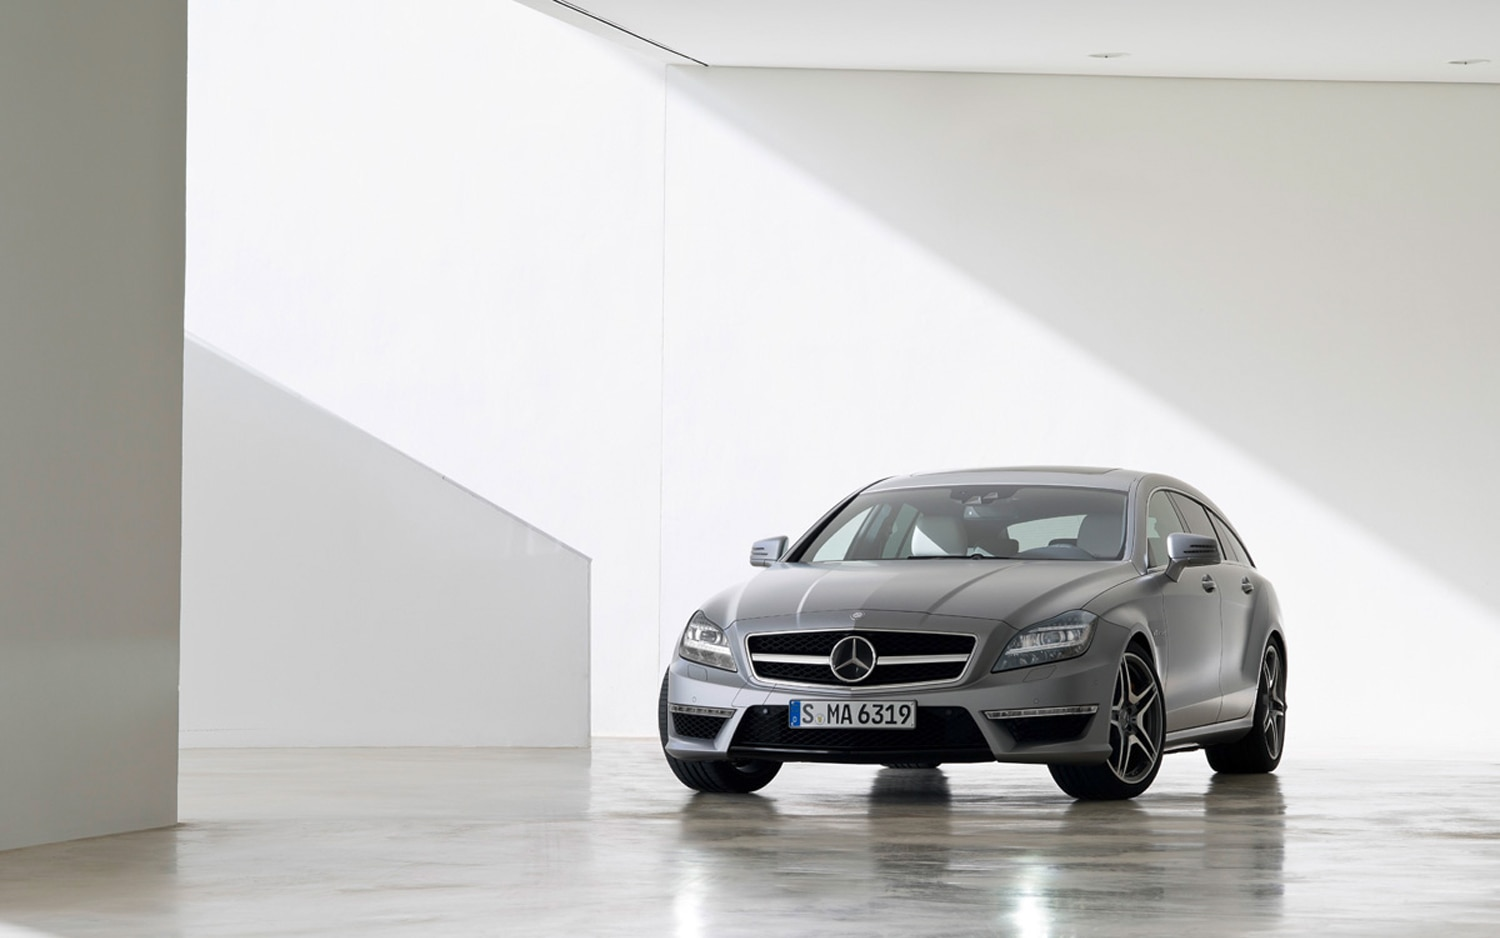 2013 Mercedes Benz CLS63 AMG Shooting Brake Front1